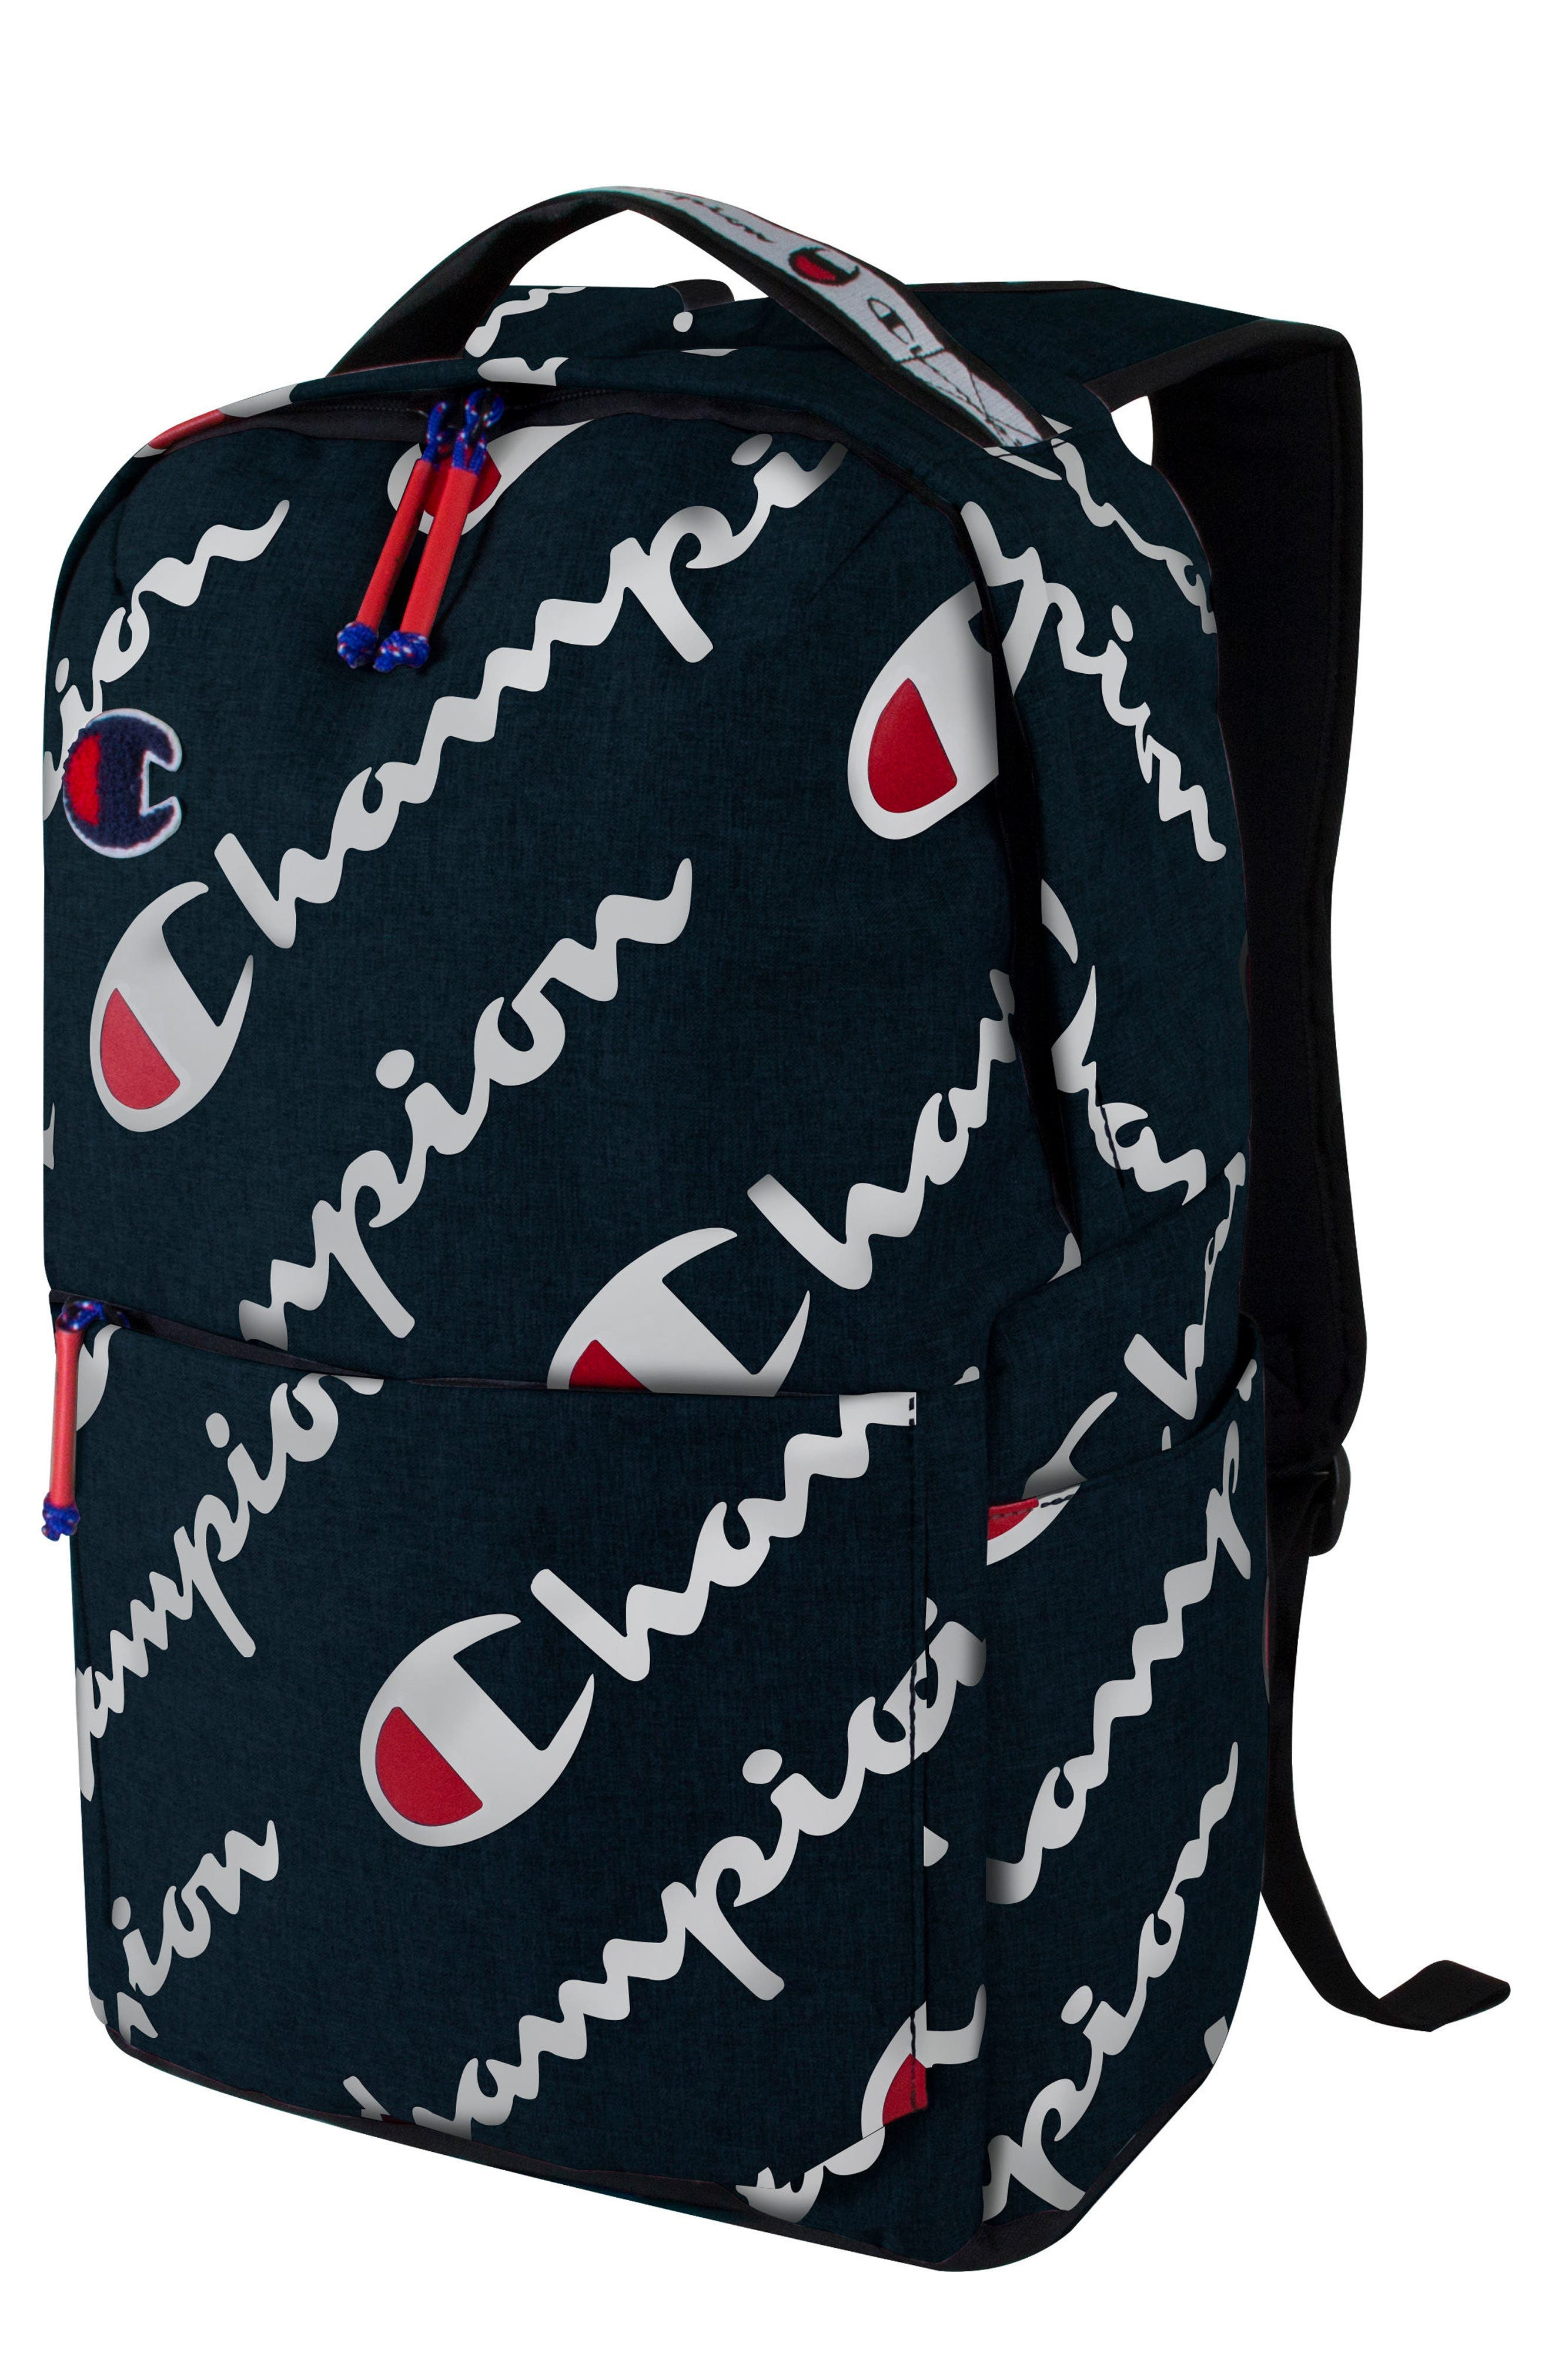 Advocate Logo Backpack,                             Main thumbnail 1, color,                             NAVY HEATHER